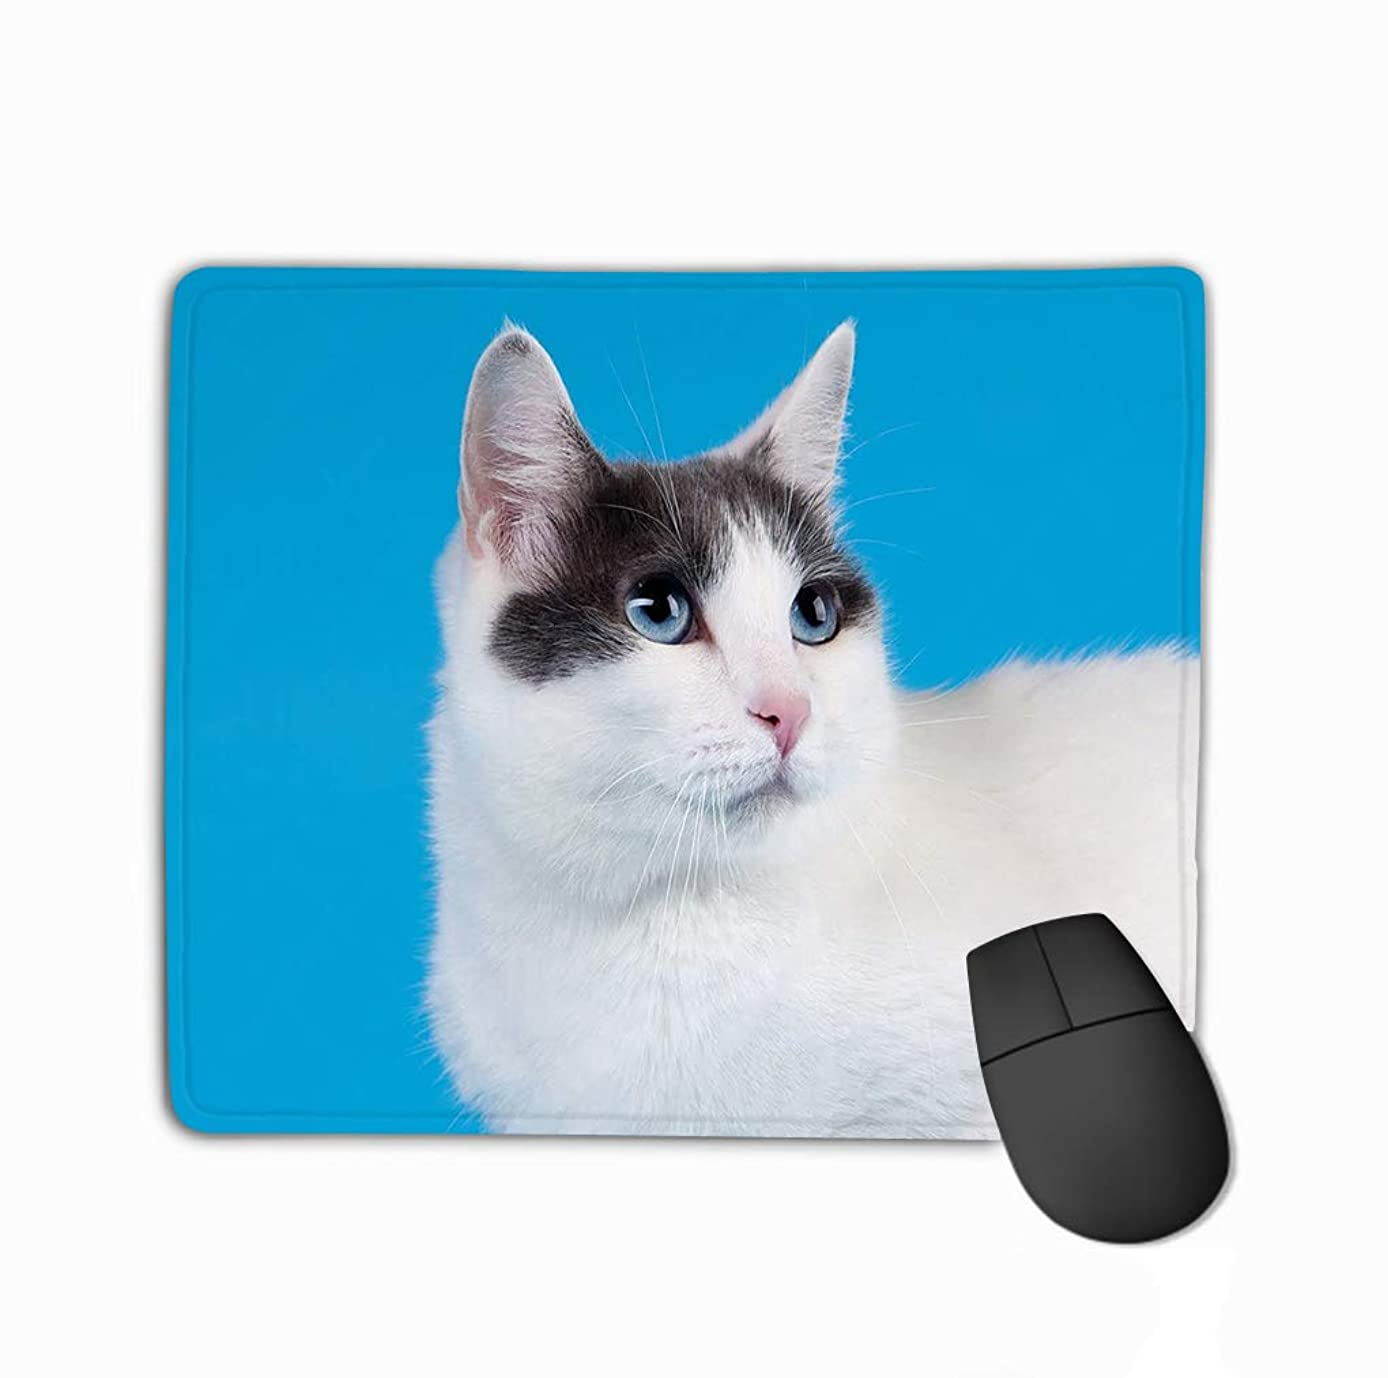 Mousepad Non Slip Rubber Personalized Unique Gaming Mouse Pad 11.81 X 9.84 Inch Bicolor Japanese Bobtail Sky Blue